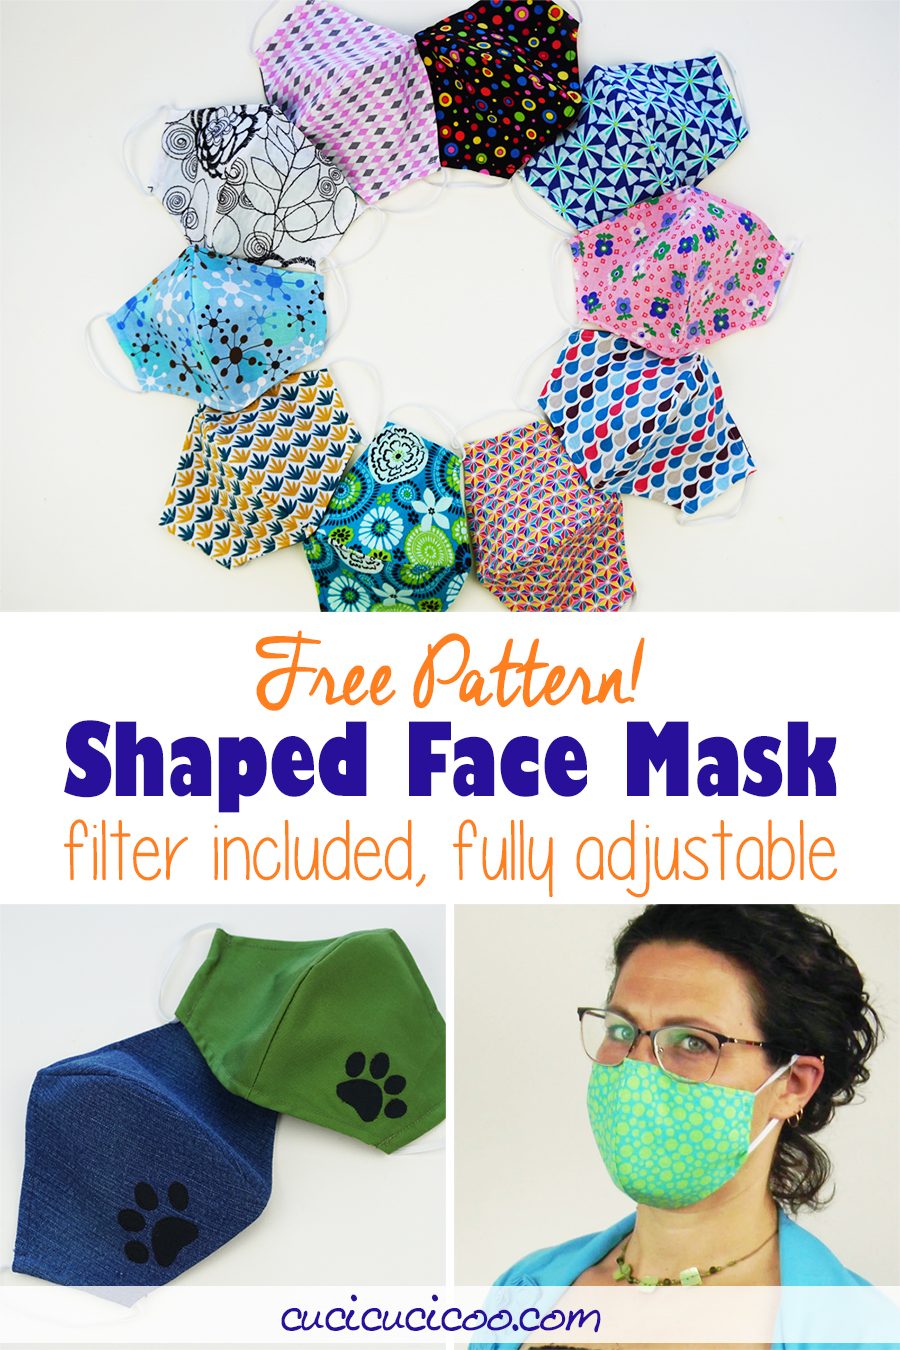 Download a FREE shaped face mask pattern with 3 sizes. This premium face covering is comfortable and fits perfectly with fully adjustable elastic ear loops, optional straps, and a removable nose wire. The pattern includes contoured filters to slip inside the filter pocket. #facemaskpattern #facemasktutorial #diyfacemask